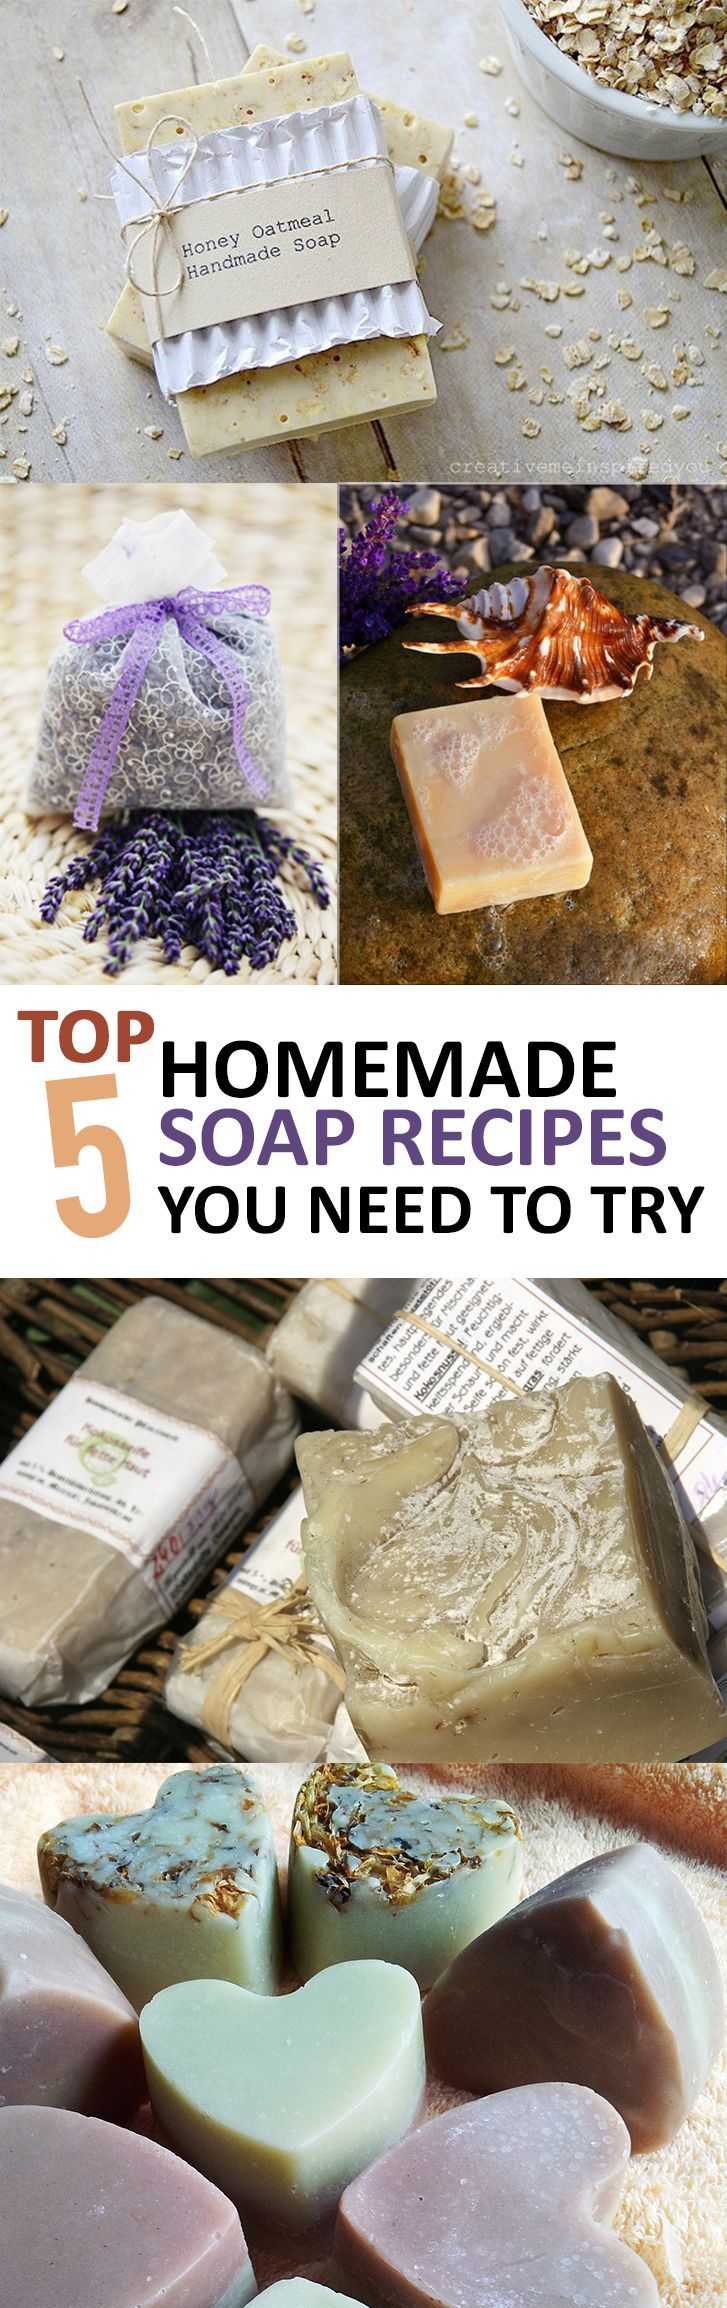 25 Unique Homemade Home Decor Ideas On Pinterest: diy homemade soap recipe